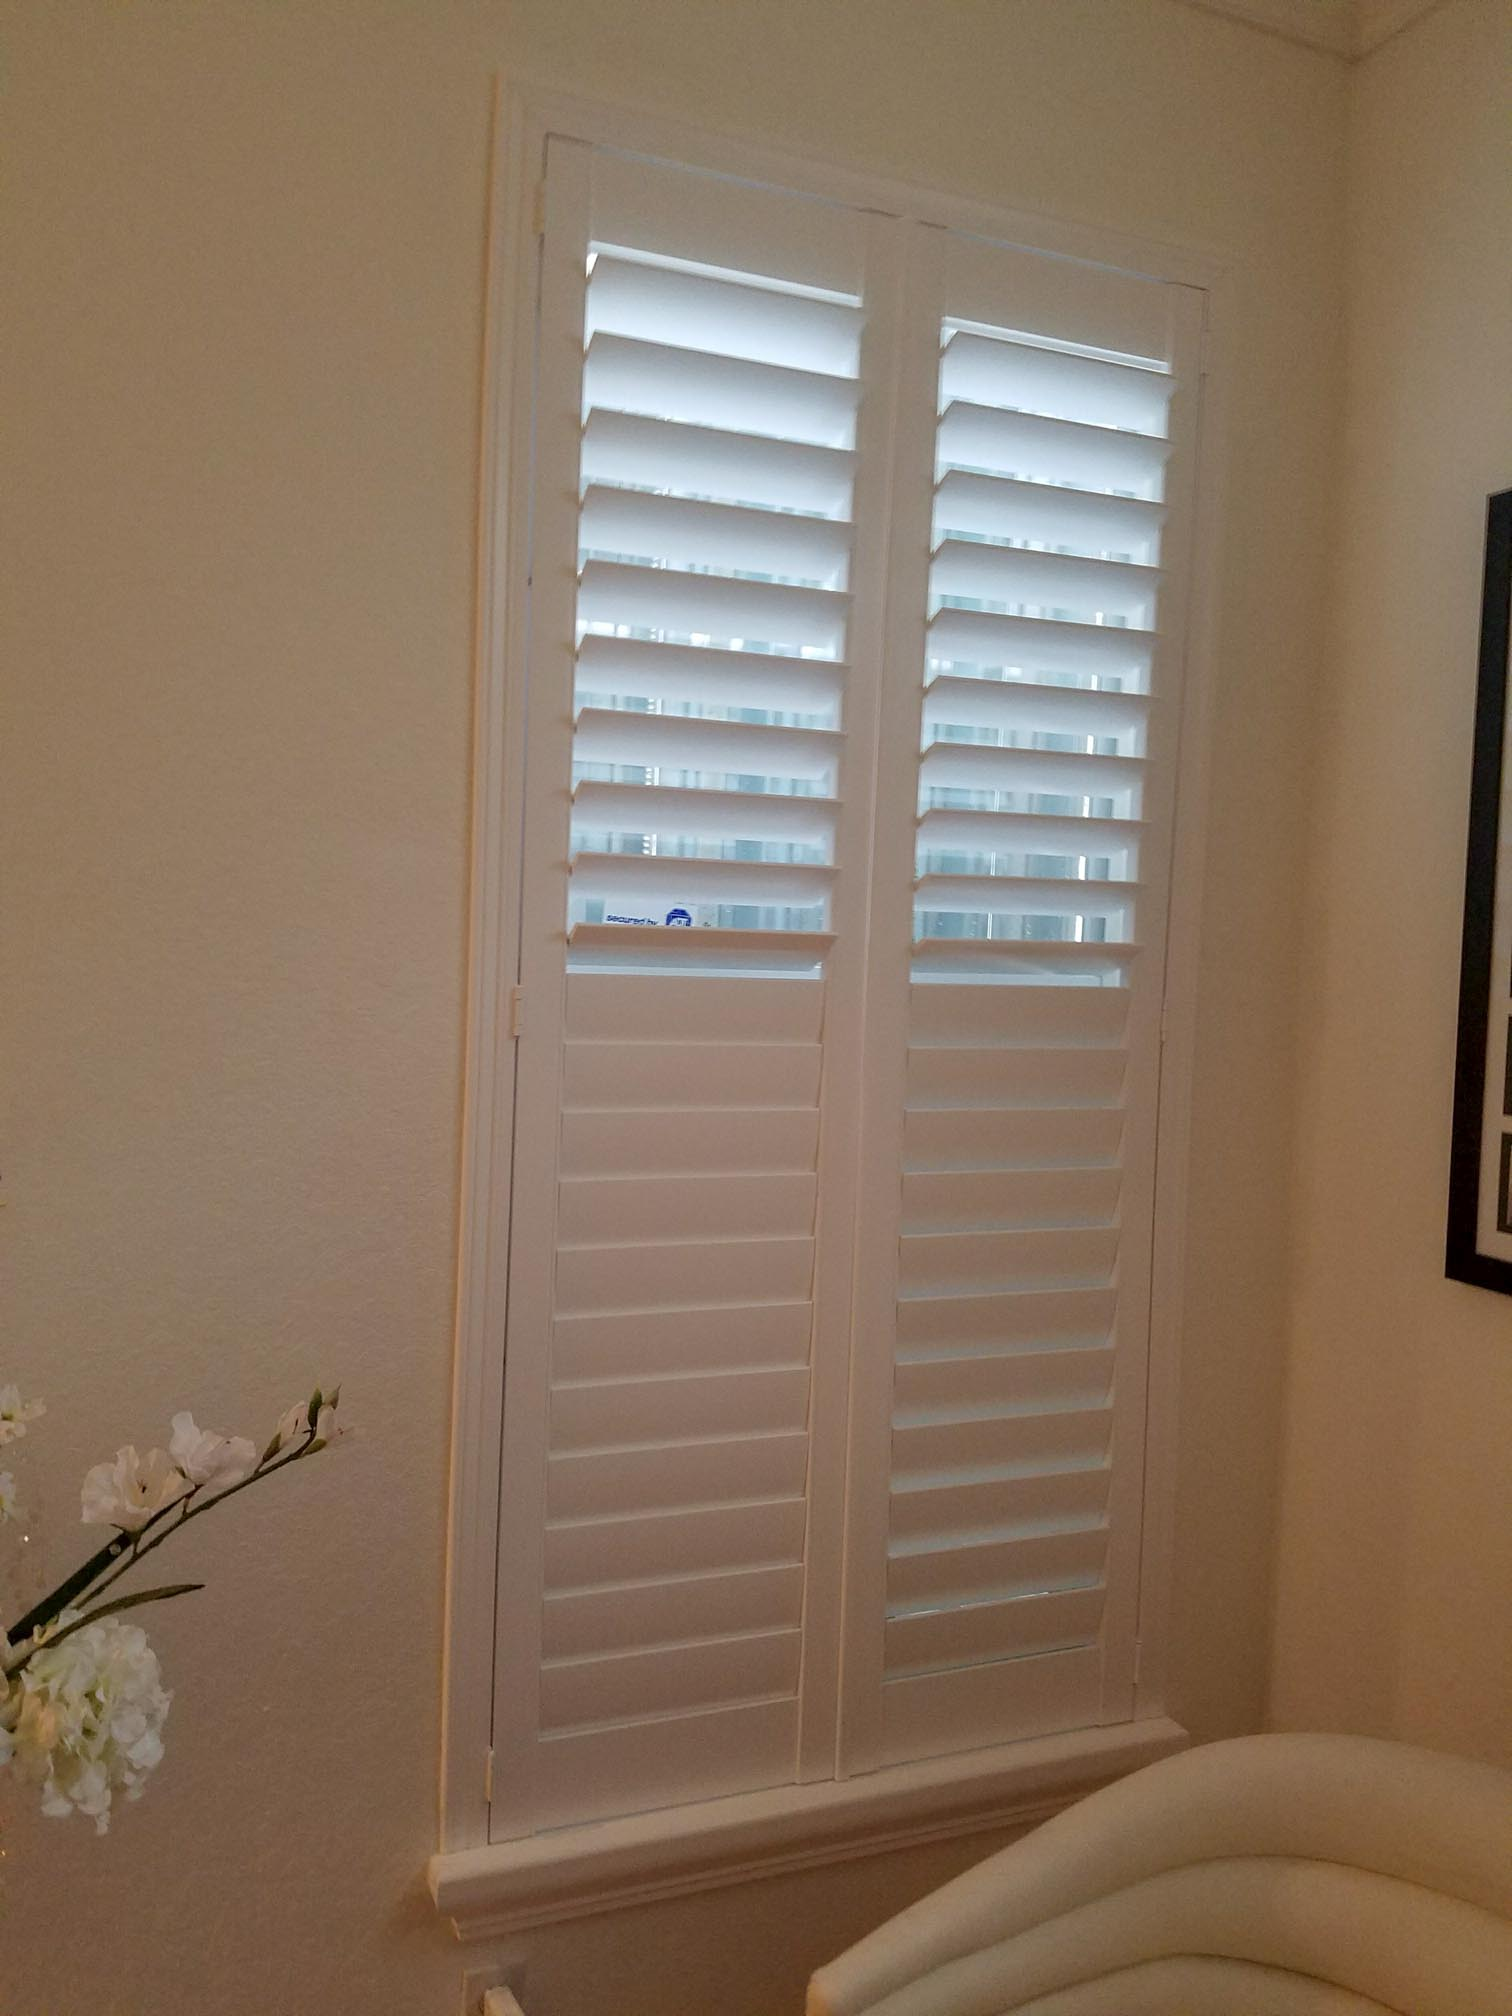 plantation shutters gallery PLANTATION SHUTTERS GALLERY 20161006 142551